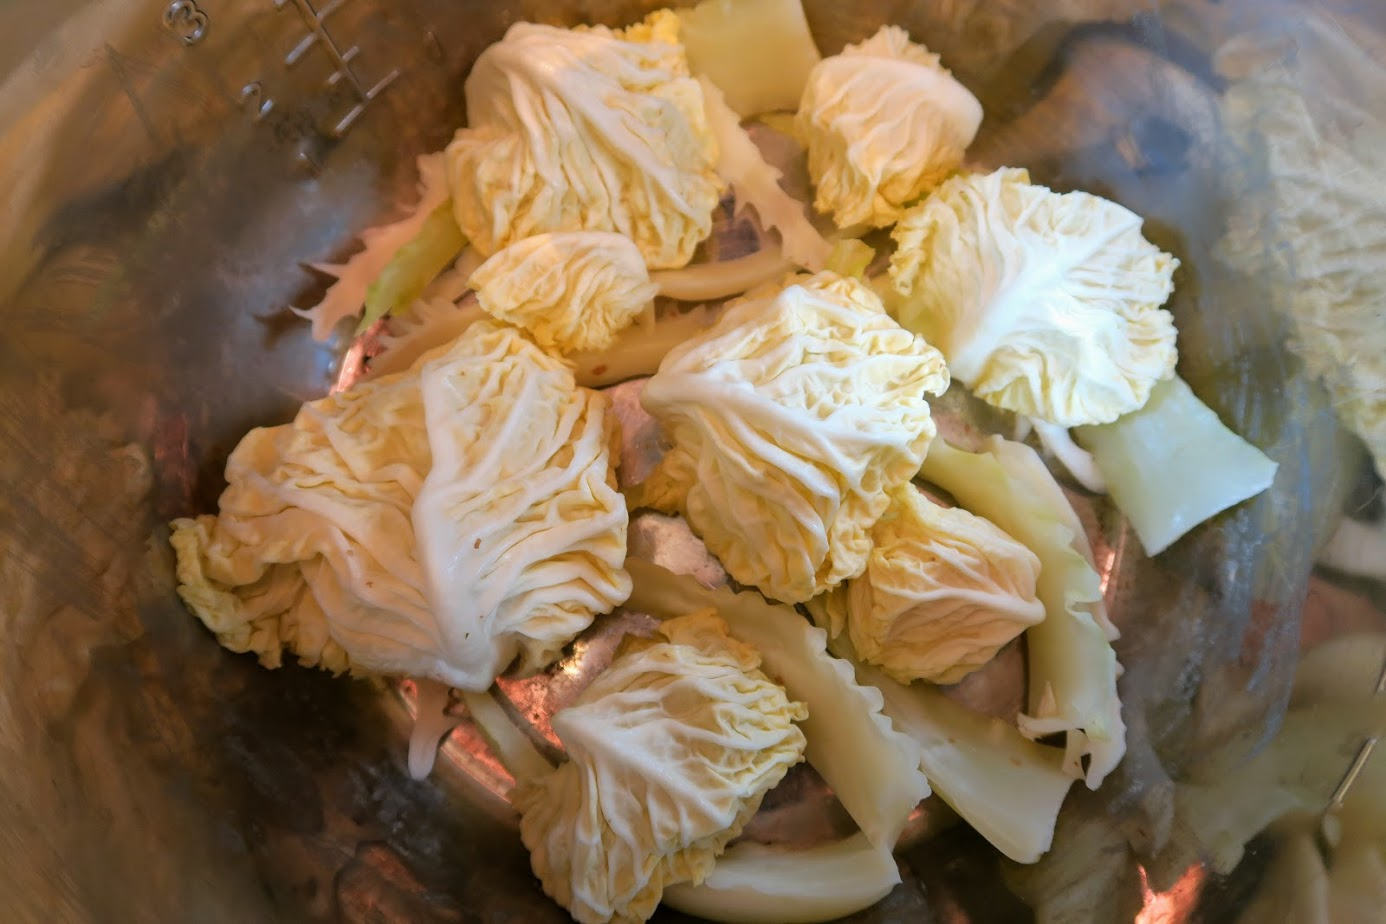 Cabbage scraps layered evenly in the bottom of the Instant Pot